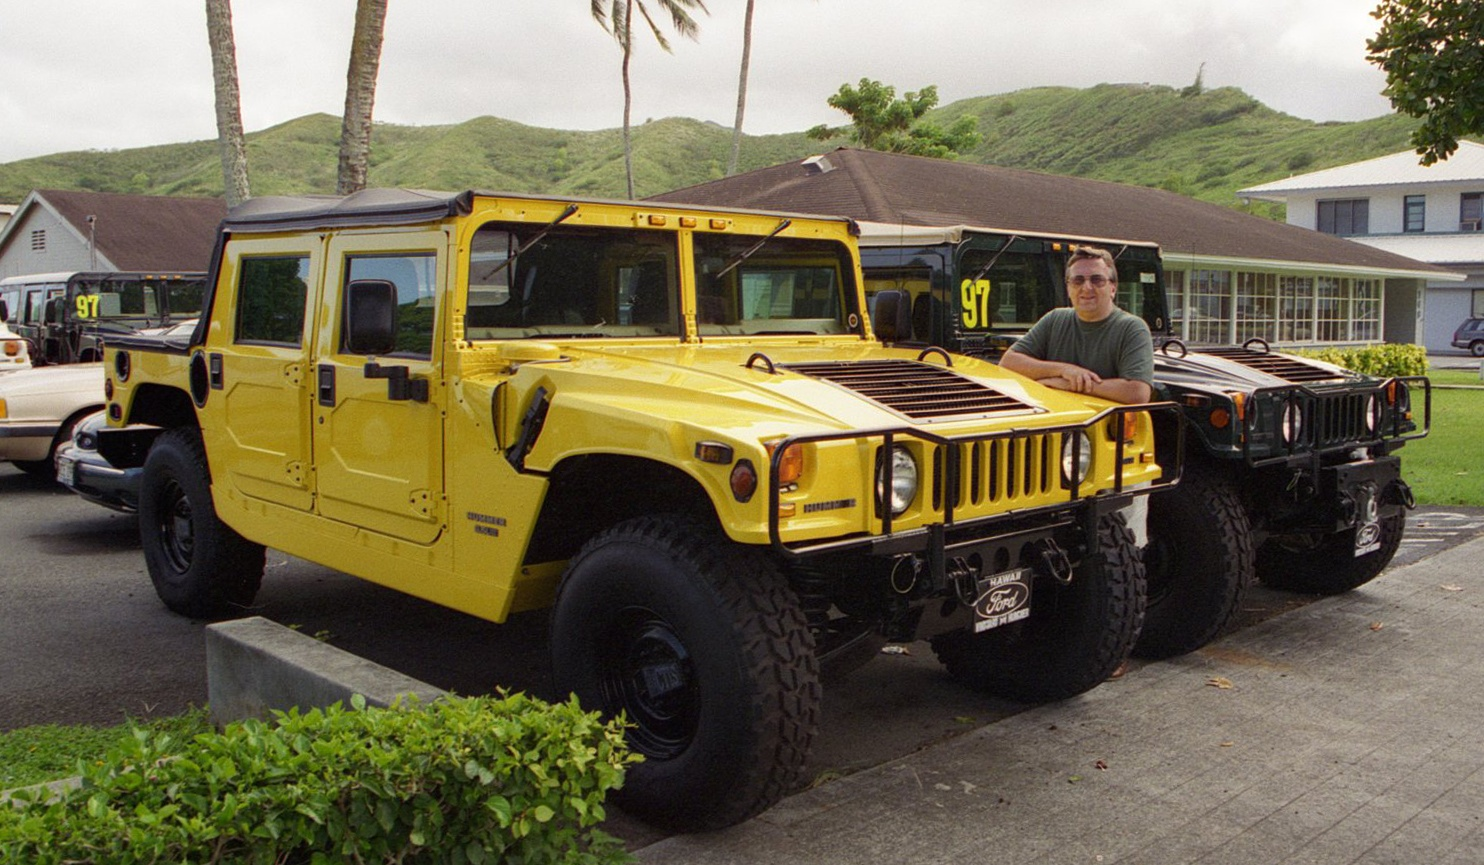 Hummer For Sale Related Images Start 0 Weili Automotive Network